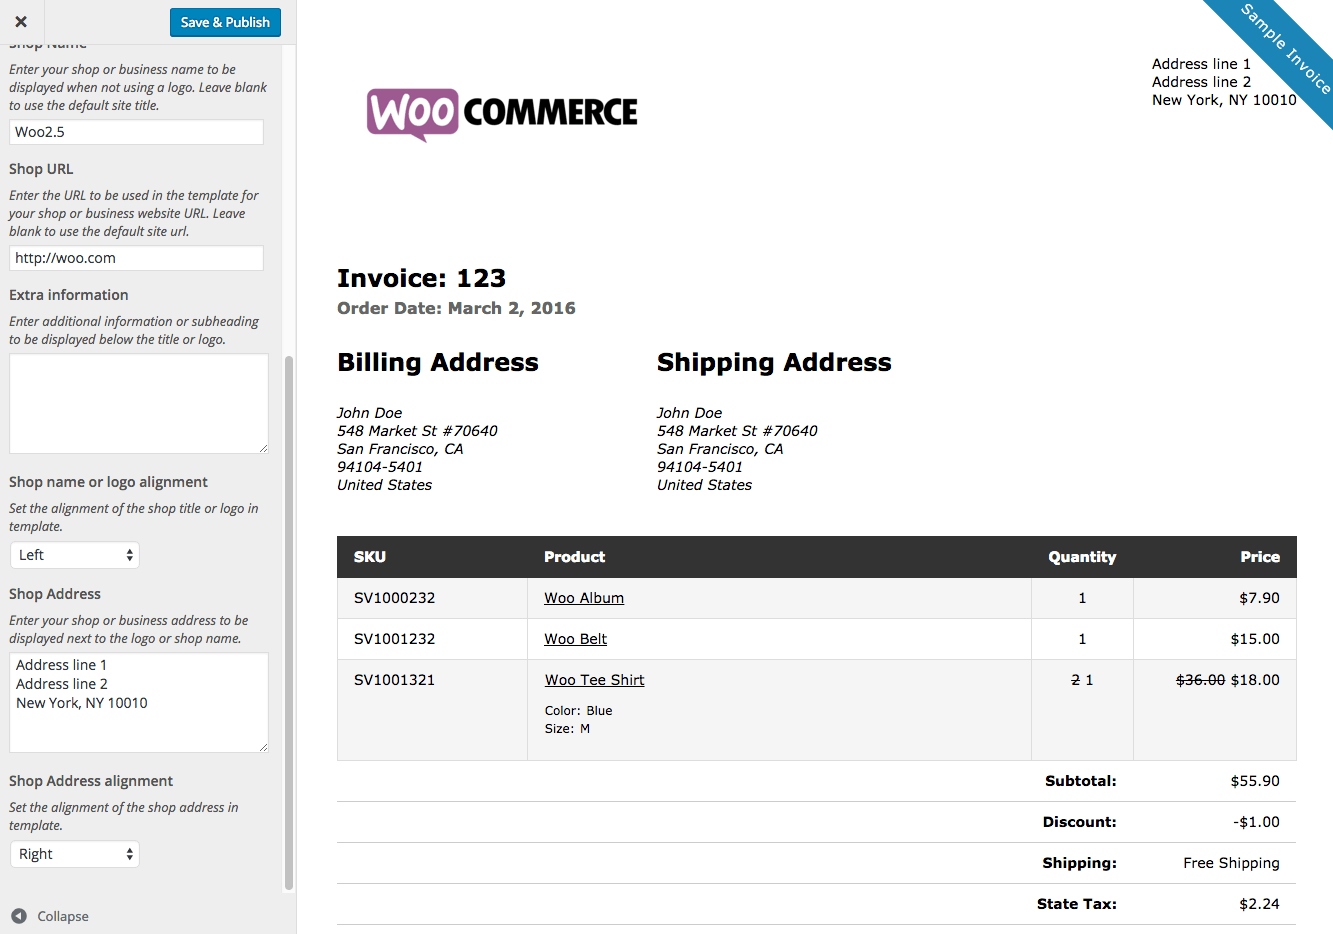 Totallocalus  Marvellous Woocommerce Print Invoices Amp Packing Lists  Woocommerce Docs With Likable Woocommerce Print Invoices  Packing Lists Customizer With Comely Toll By Plate Invoice Also How To Write An Invoice In Addition Printable Invoice And Invoice App As Well As Free Invoice Generator Additionally Sample Invoice From Docswoocommercecom With Totallocalus  Likable Woocommerce Print Invoices Amp Packing Lists  Woocommerce Docs With Comely Woocommerce Print Invoices  Packing Lists Customizer And Marvellous Toll By Plate Invoice Also How To Write An Invoice In Addition Printable Invoice From Docswoocommercecom